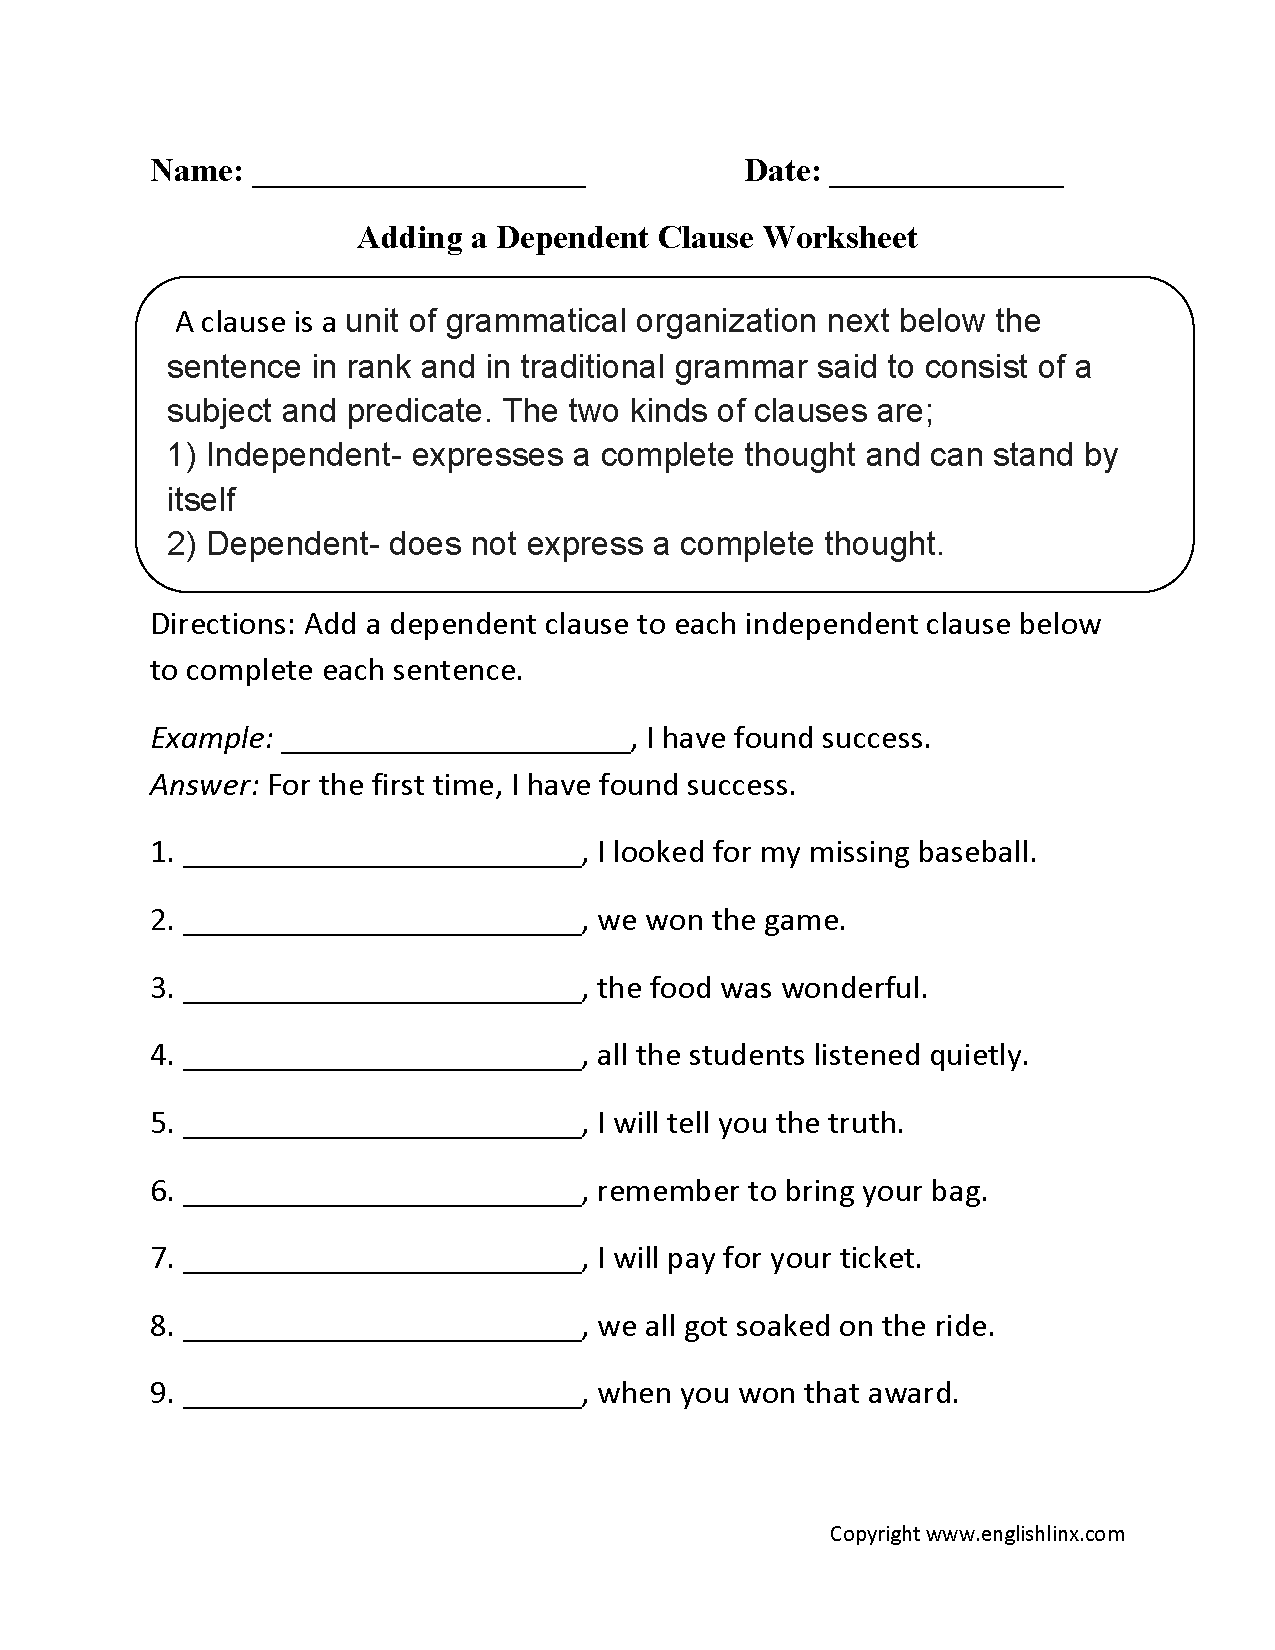 Worksheets Independent And Subordinate Clauses Worksheet independent and subordinate clauses worksheet dependent samsungblueearth